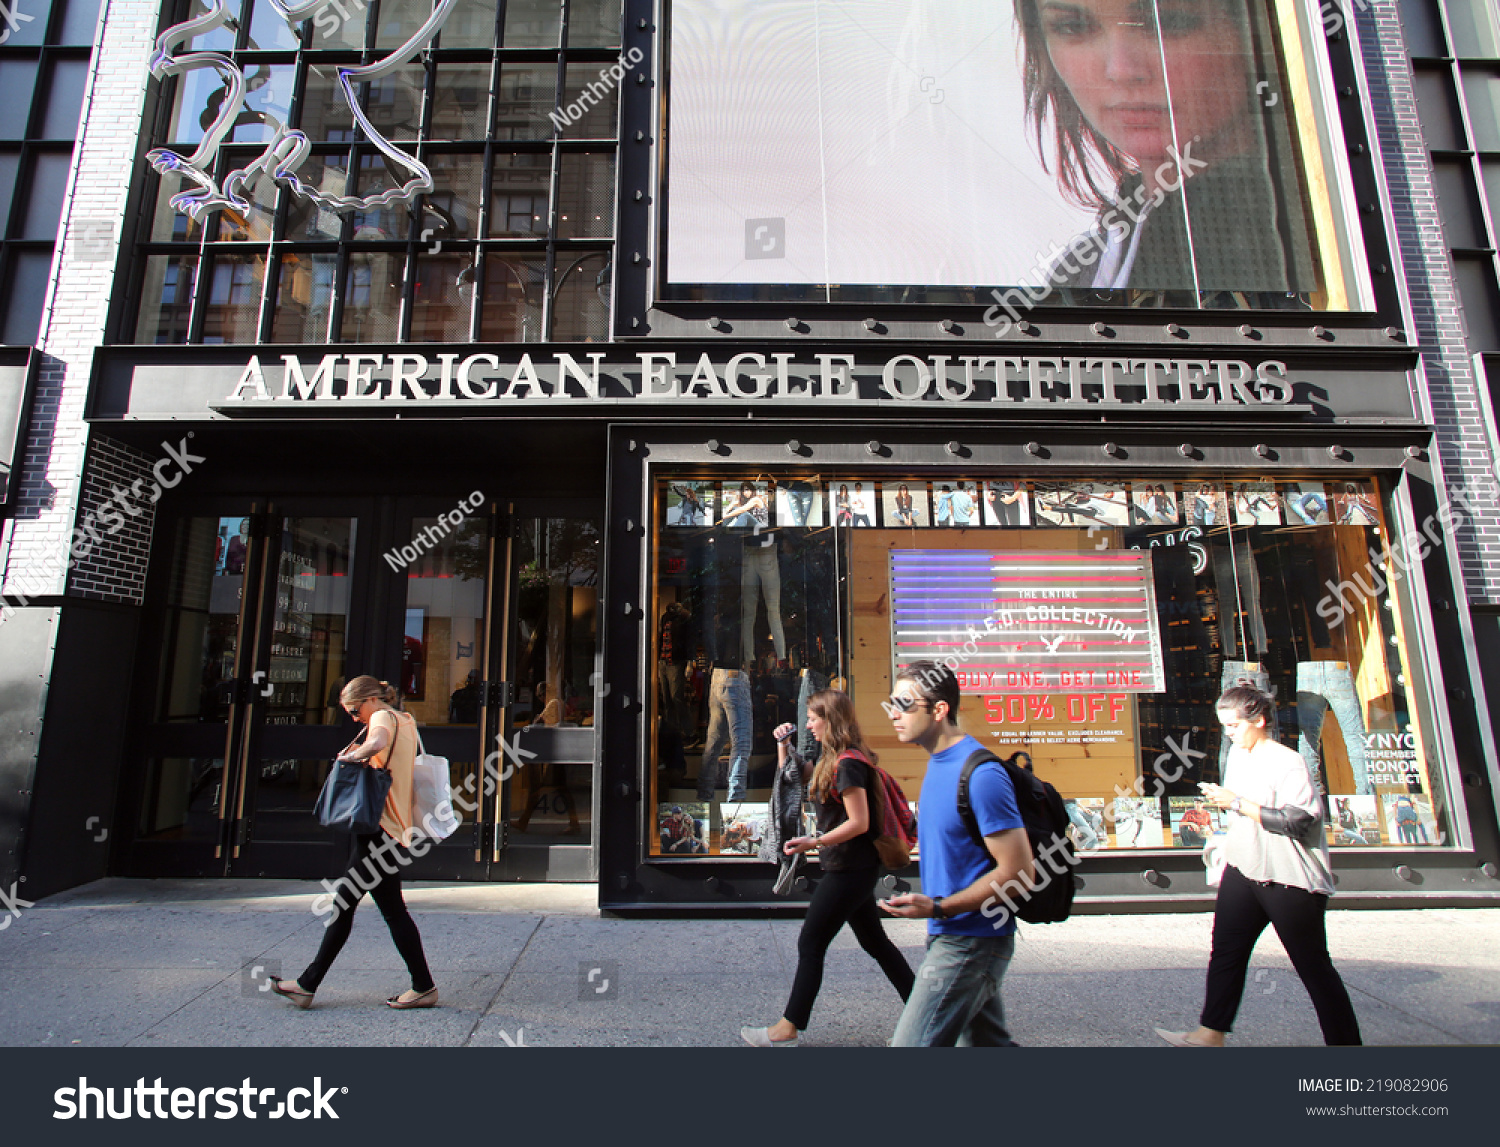 American Eagle Outfitters store locations in New York, online shopping information - 44 stores and outlet stores locations in database for state New York. Get information about hours, locations, contacts and find store on map.